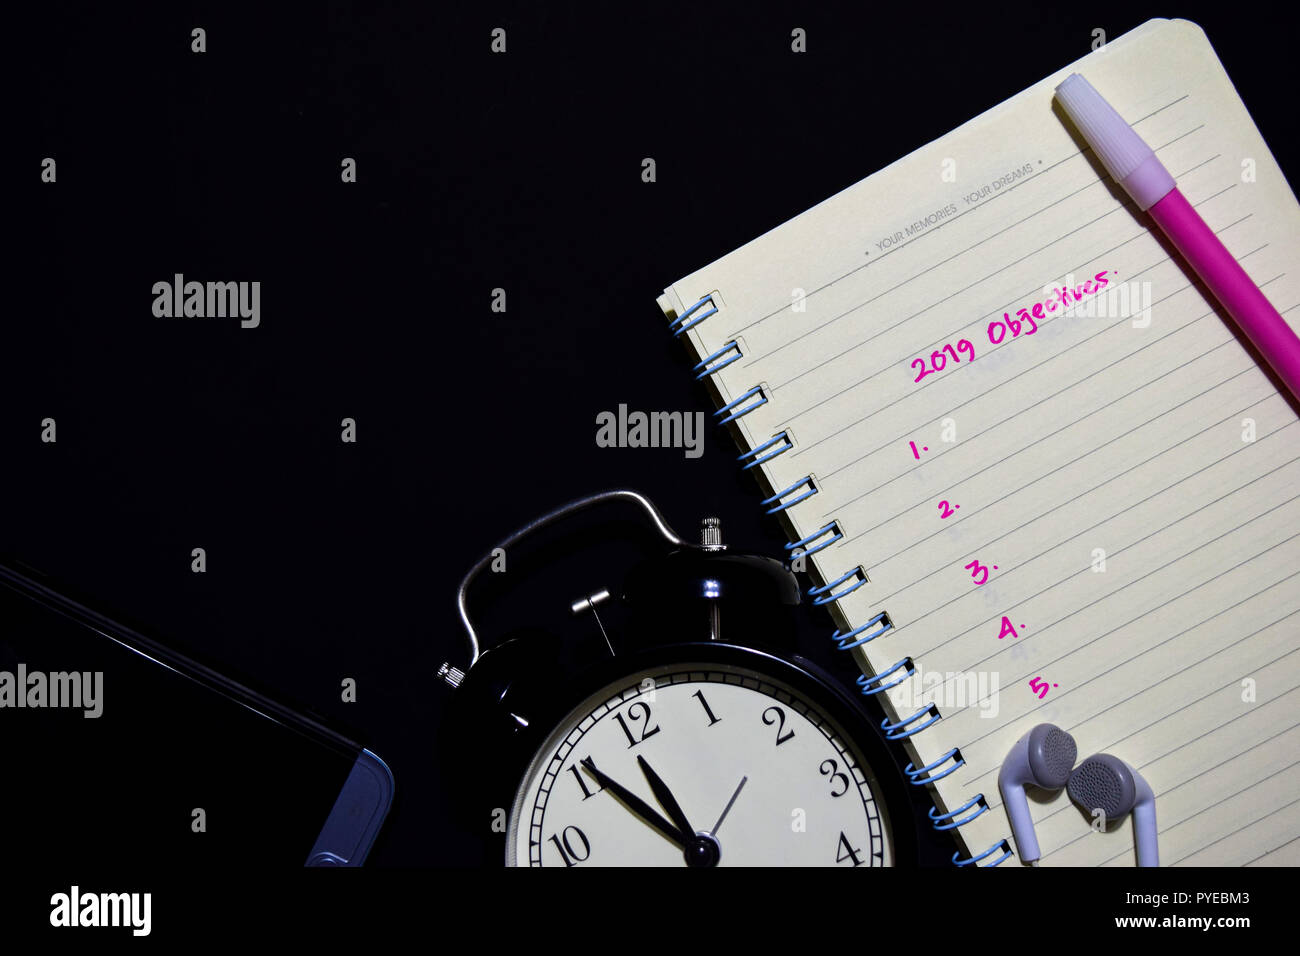 2019 Objectives text on notebook, alarm clock, color pen, smartphone on black background, for business presentation mock up for adding your list - Stock Image